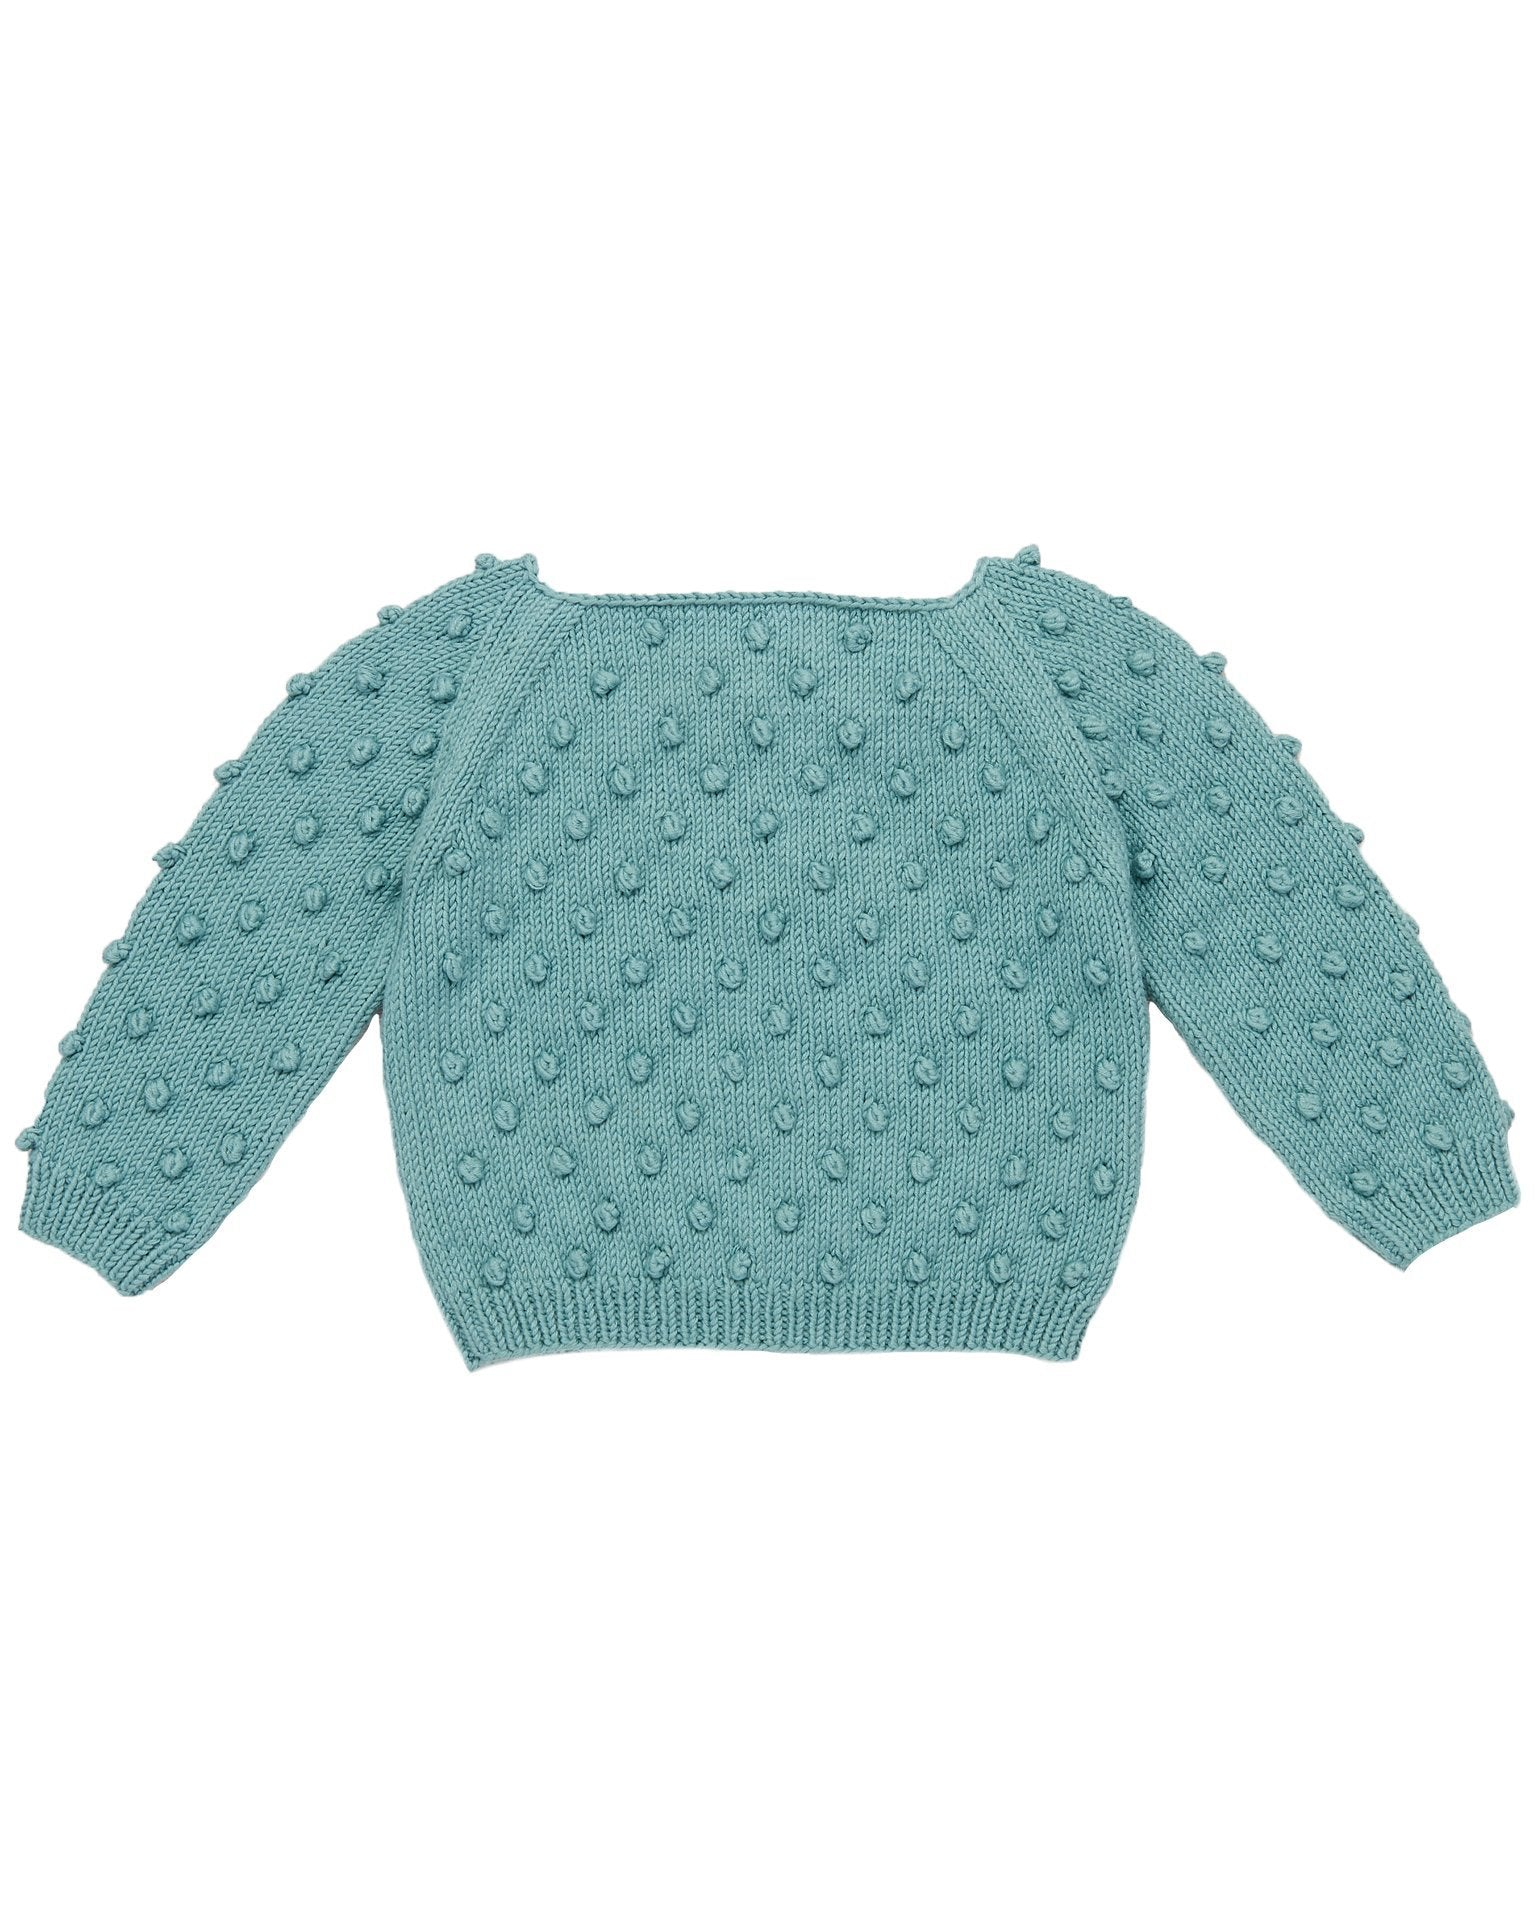 Little misha + puff girl summer popcorn sweater in dusty blue